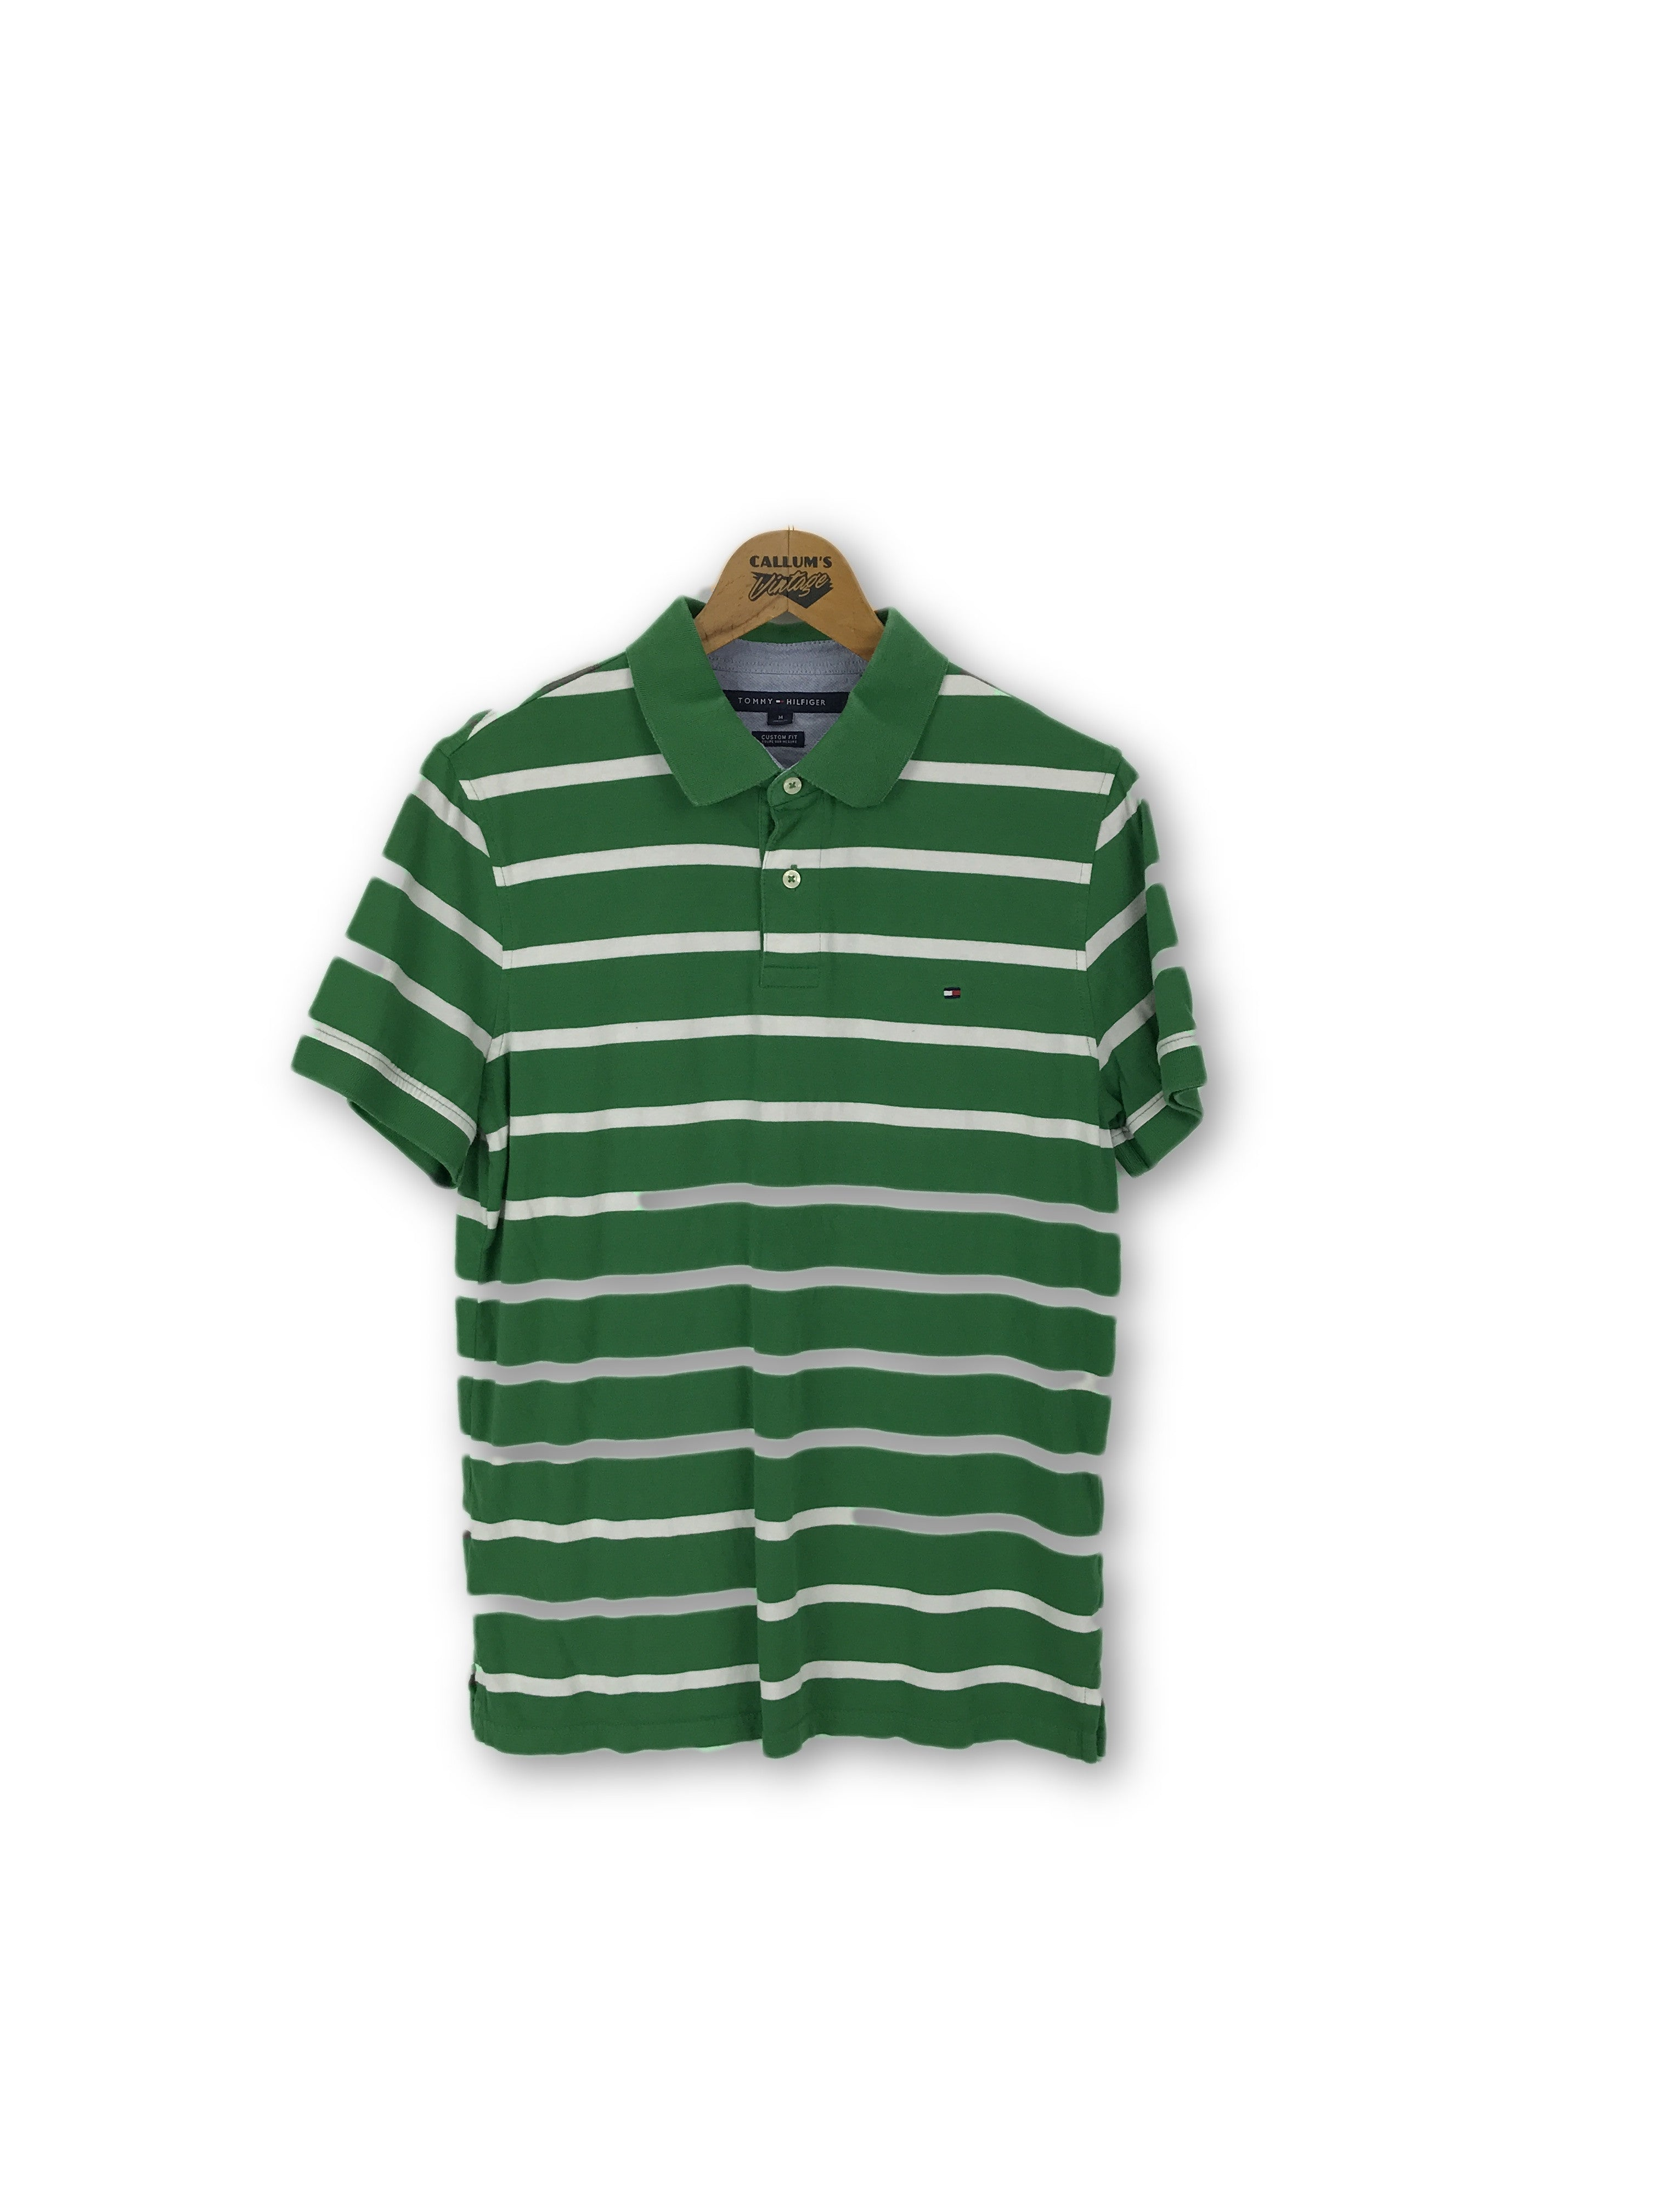 725f7772 Tommy Hilfiger Striped Polo Shirt Medium – Callum's Vintage